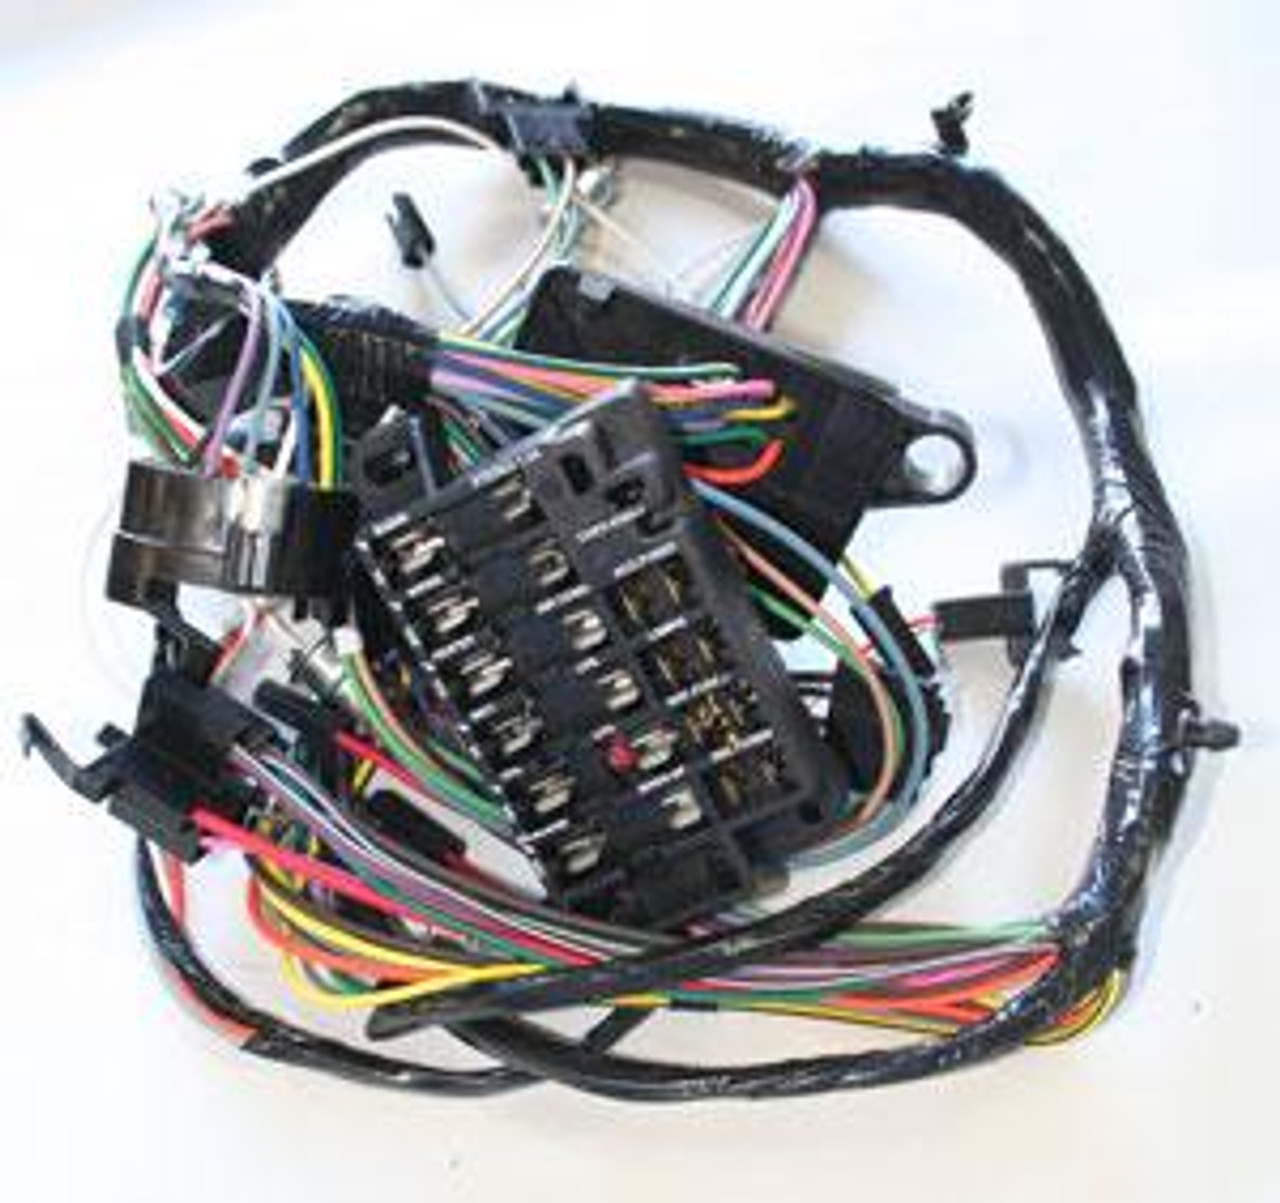 1964 Chevelle, El Camino Dash Harness, with Warning Lights (CH48205)